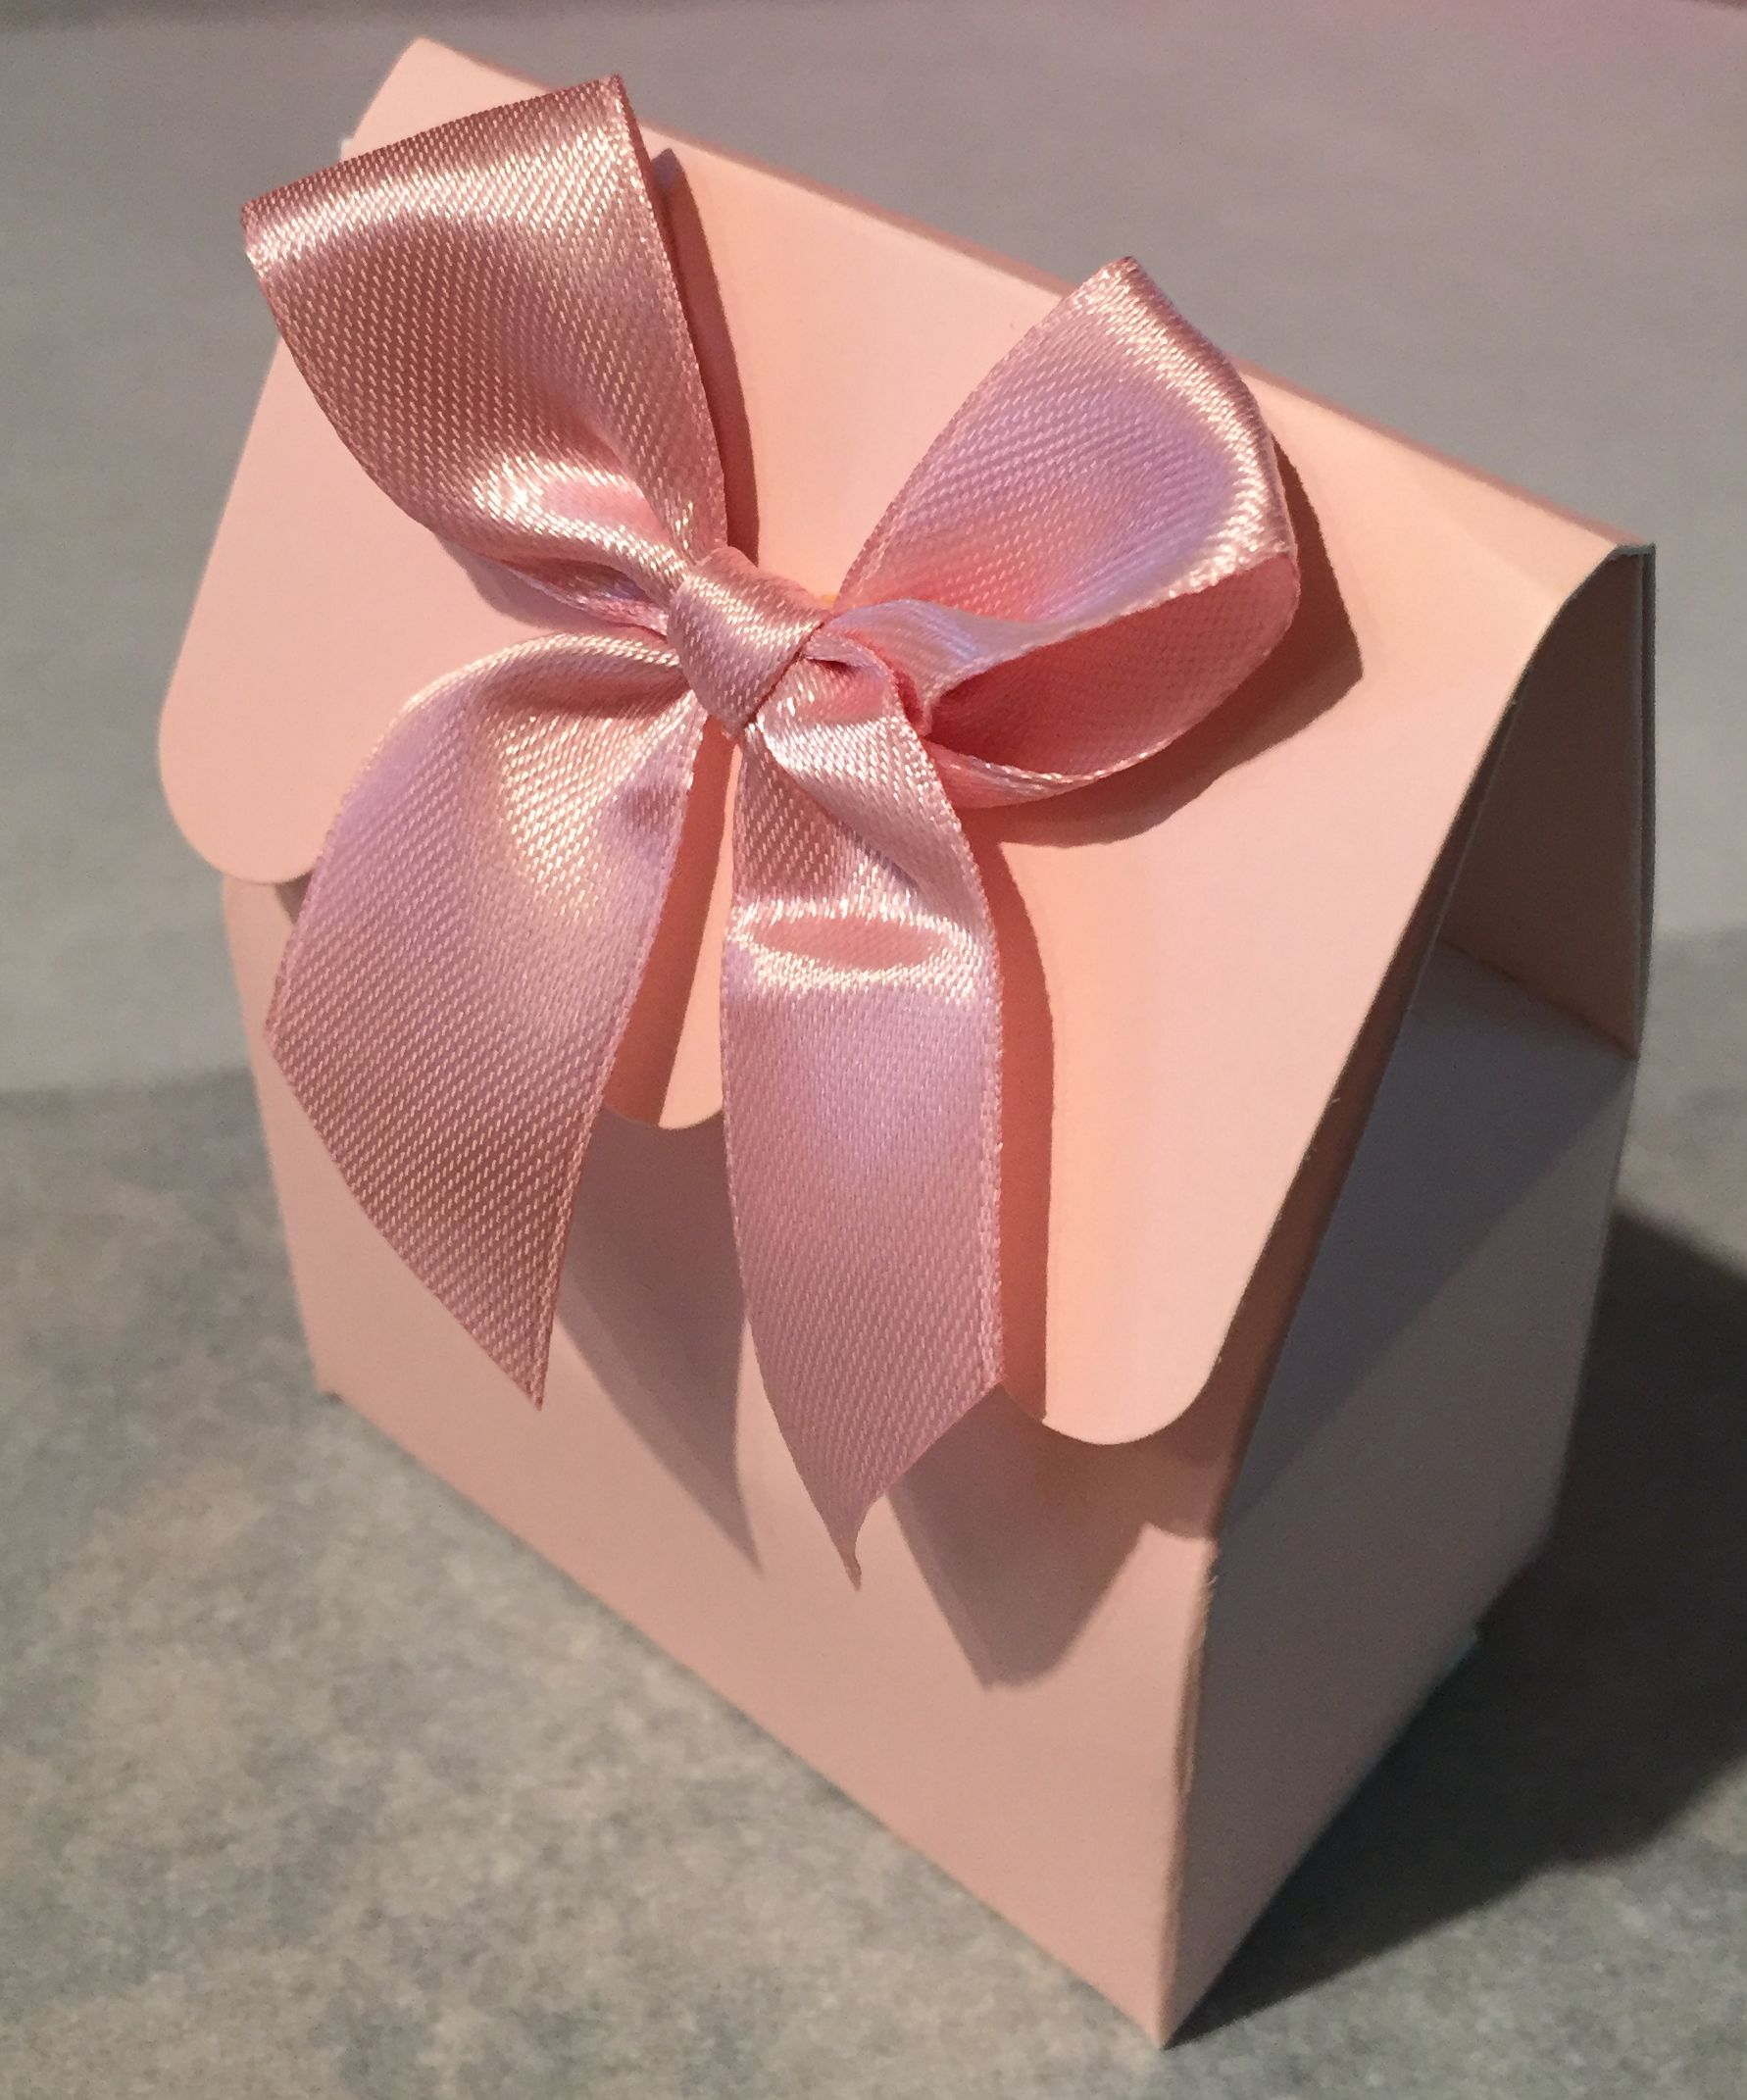 Scalloped Box w/ Bow Filled with approx. 1 1/4 oz of Love Nibbles ...